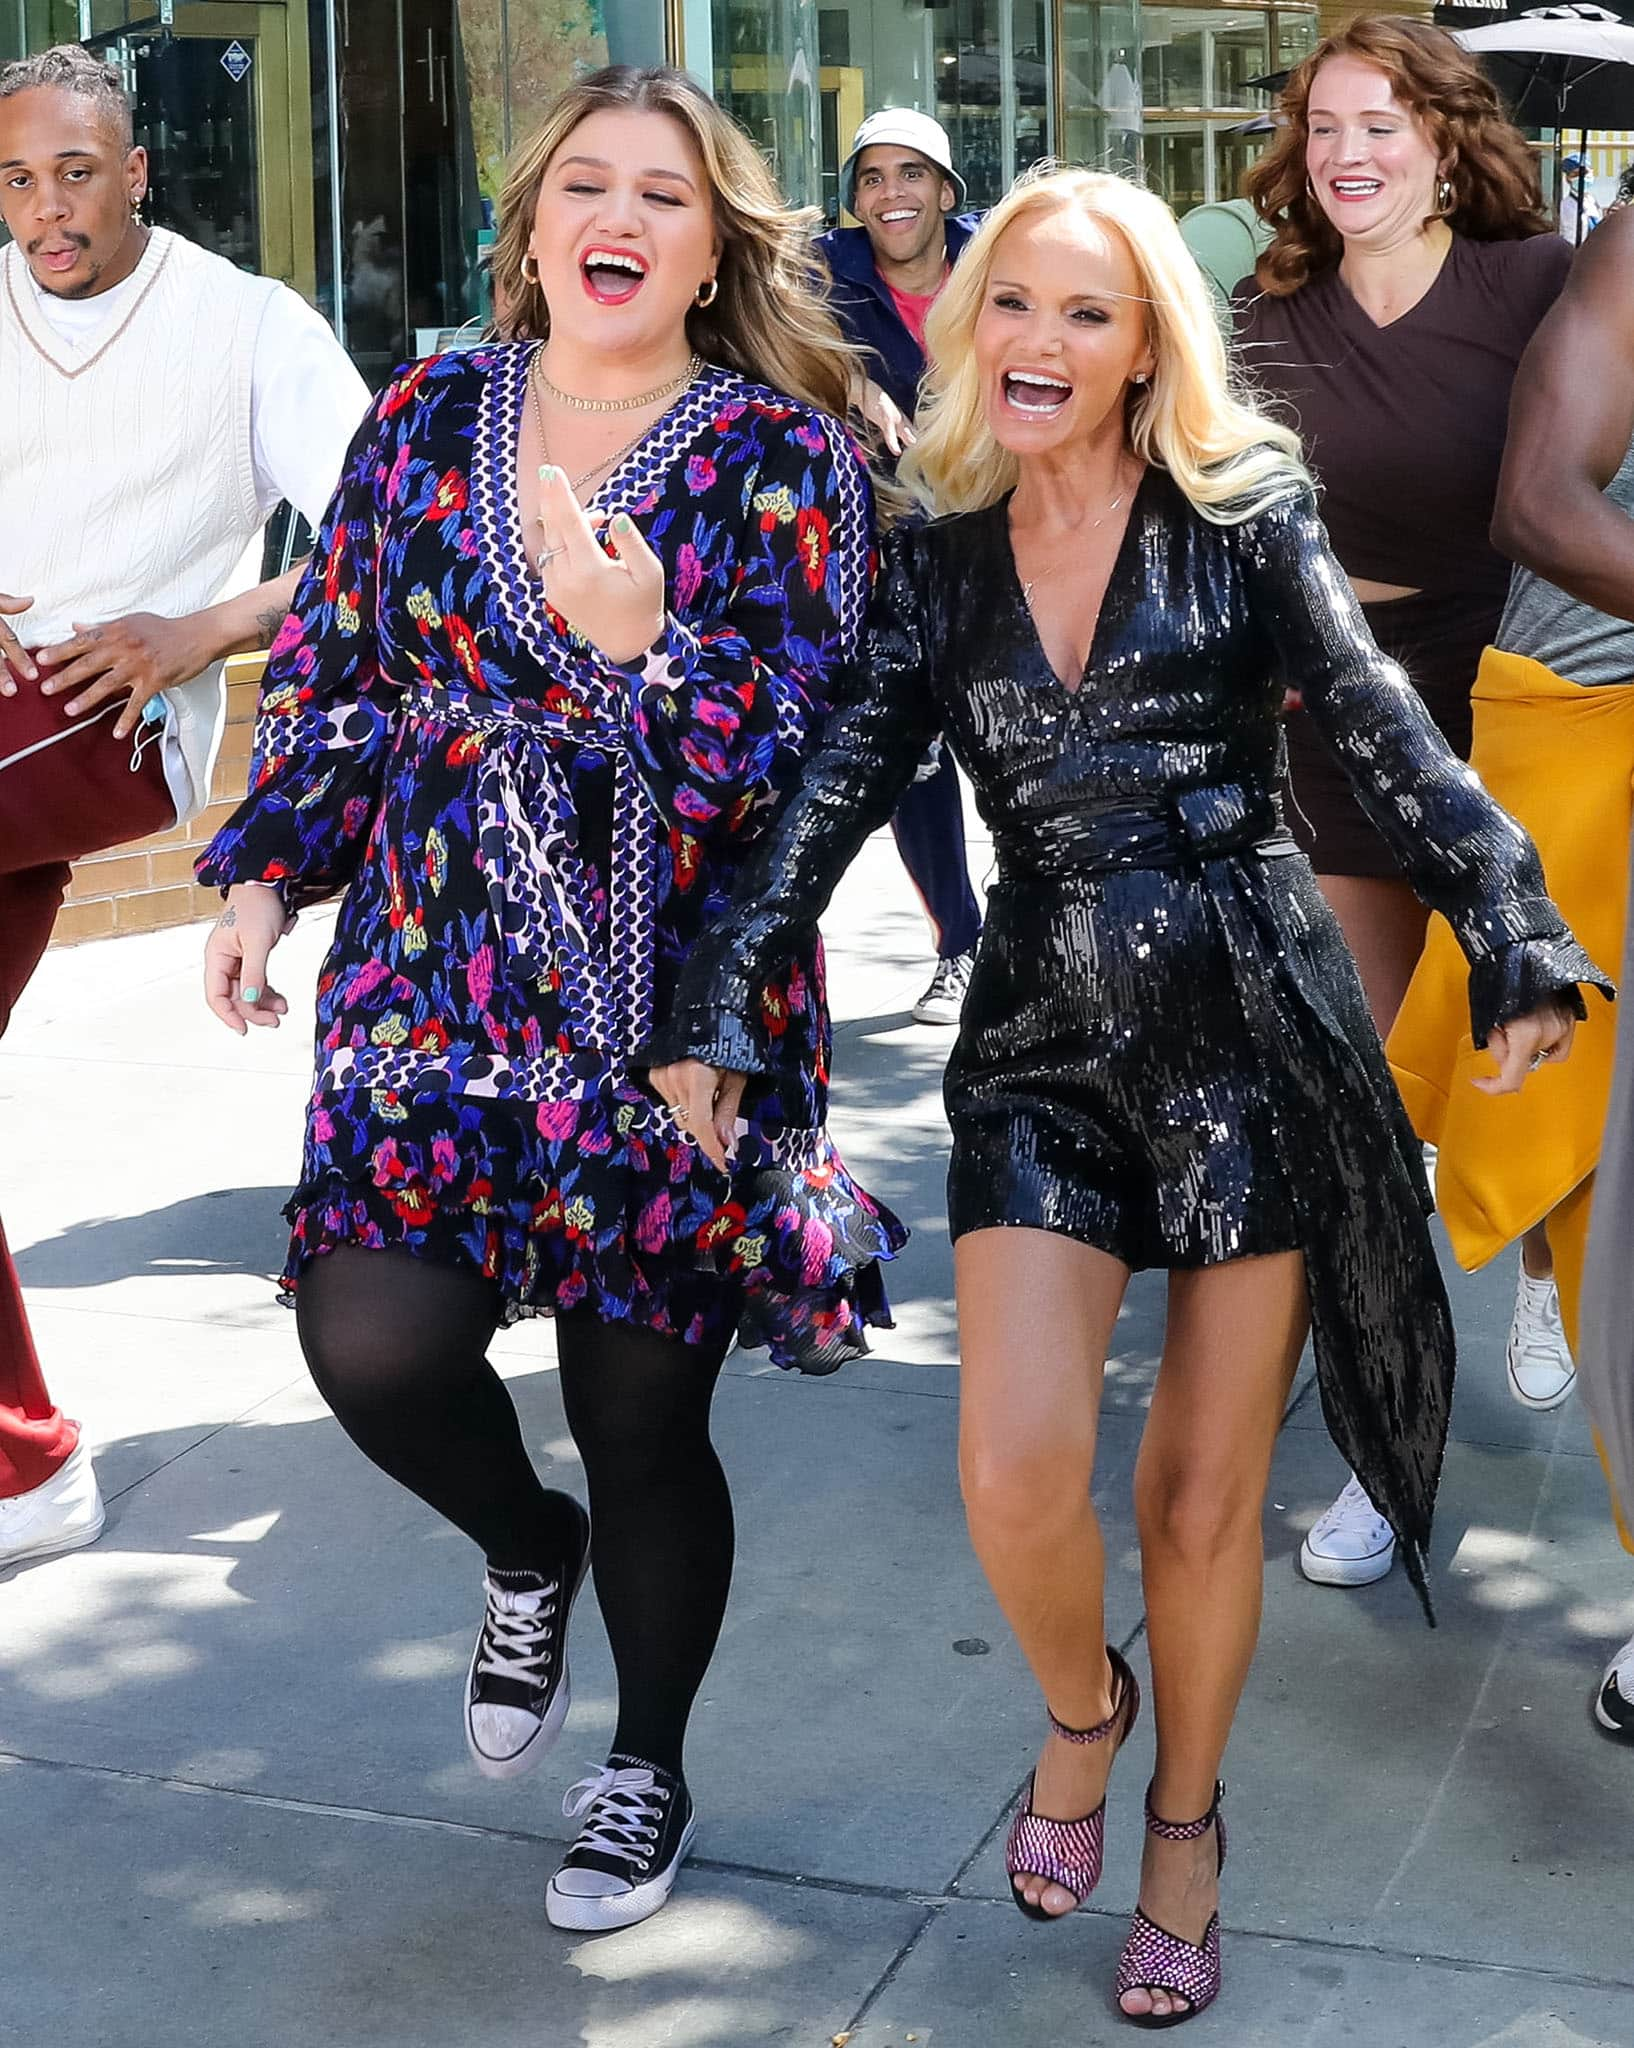 Kelly Clarkson and Kristin Chenoweth filming a music video for the season premiere of The Kelly Clarkson Show on August 24, 2021